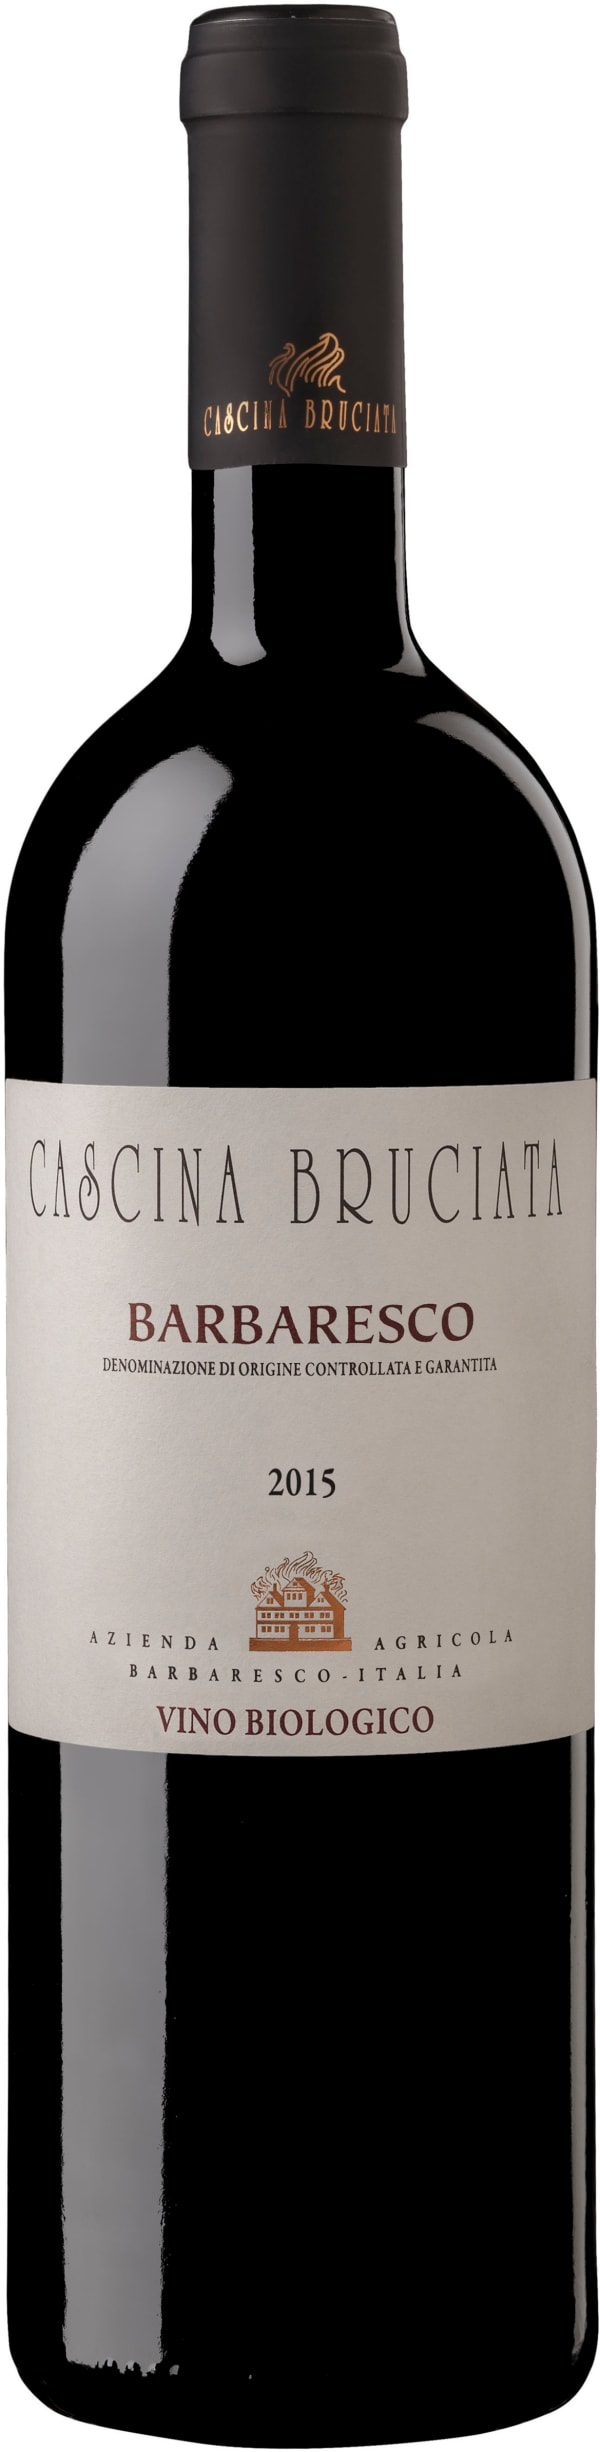 Cascina Bruciata Barbaresco 2015